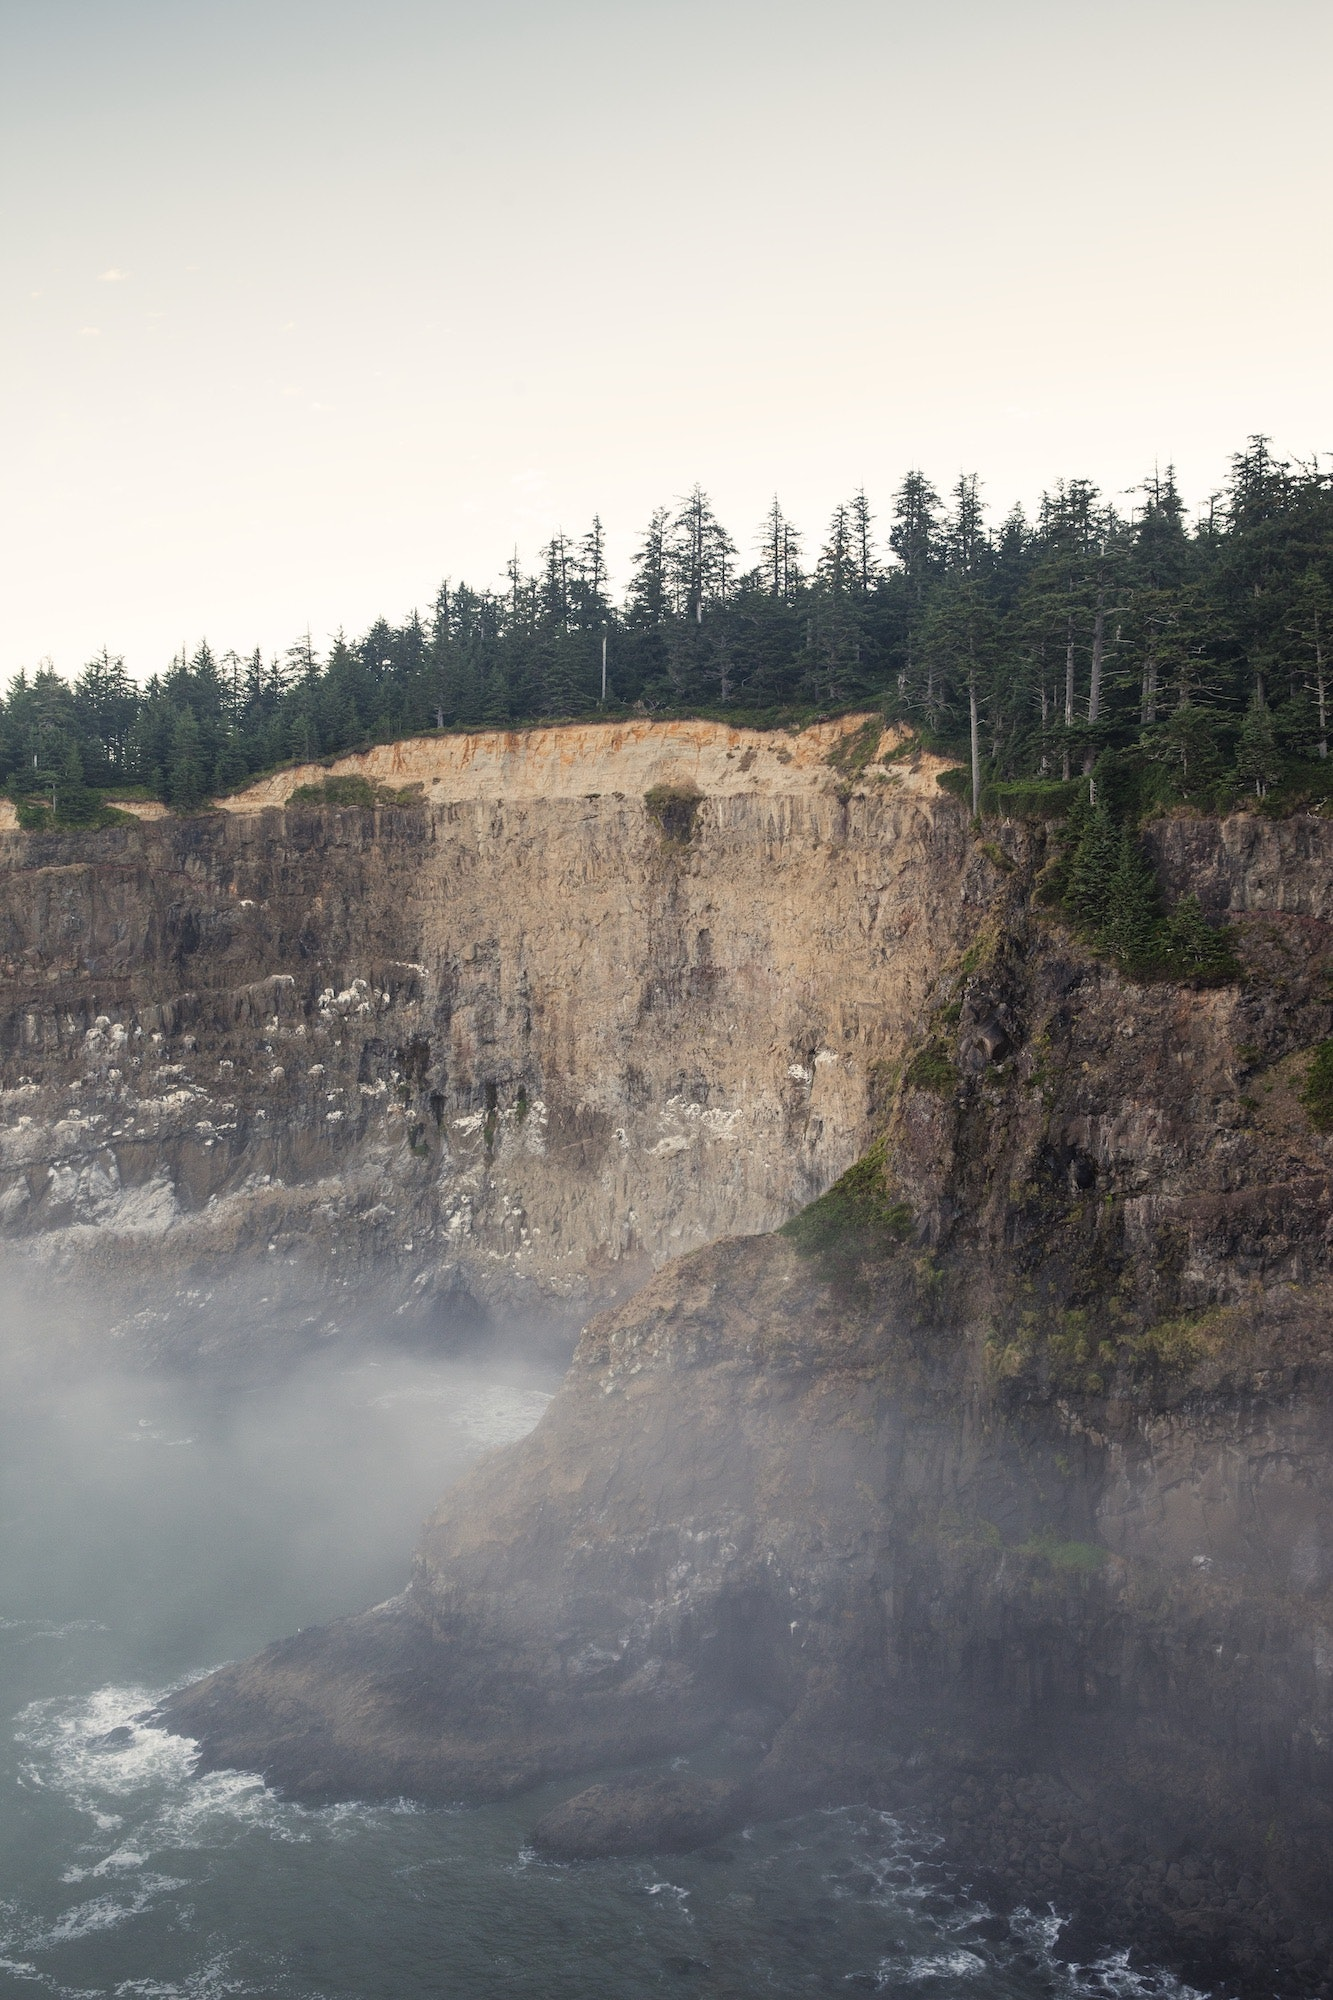 The Oregon coast looks daunting from the Cape Meares Lighthouse bluffs, but the waters hold vast promise for adventurous foragers.